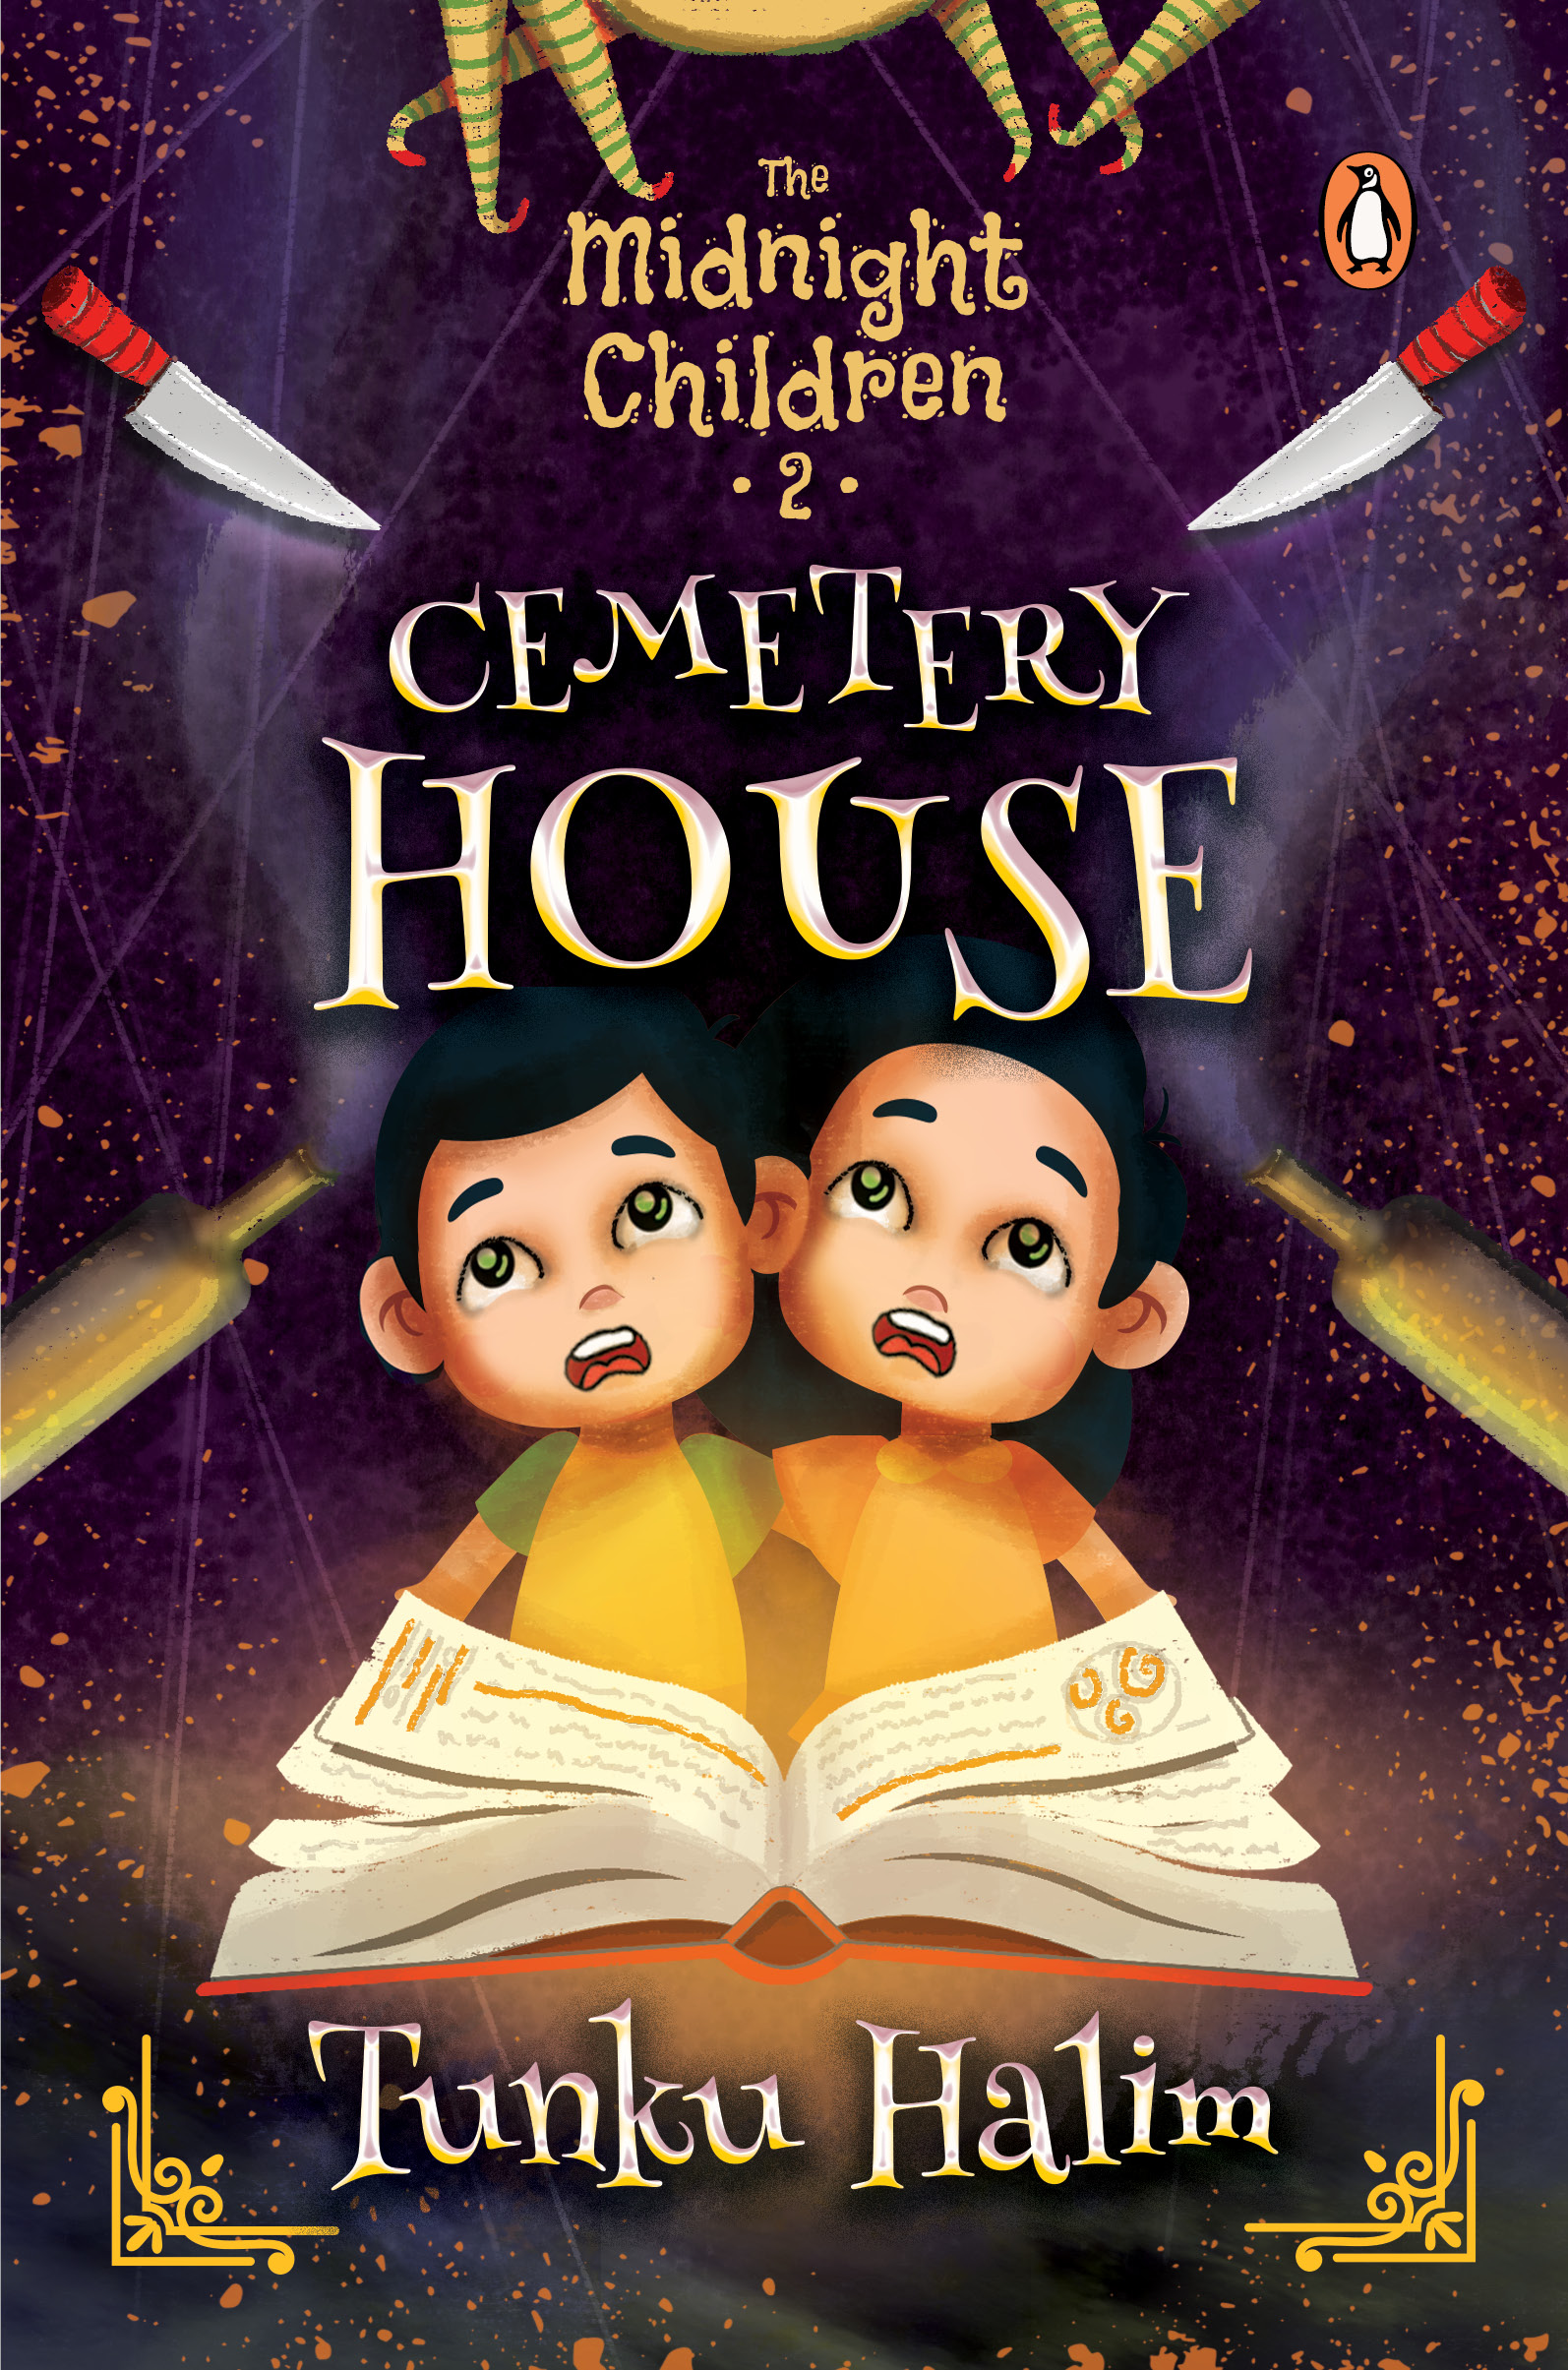 THE MIDNIGHT CHILDREN: CEMETERY HOUSE - 2